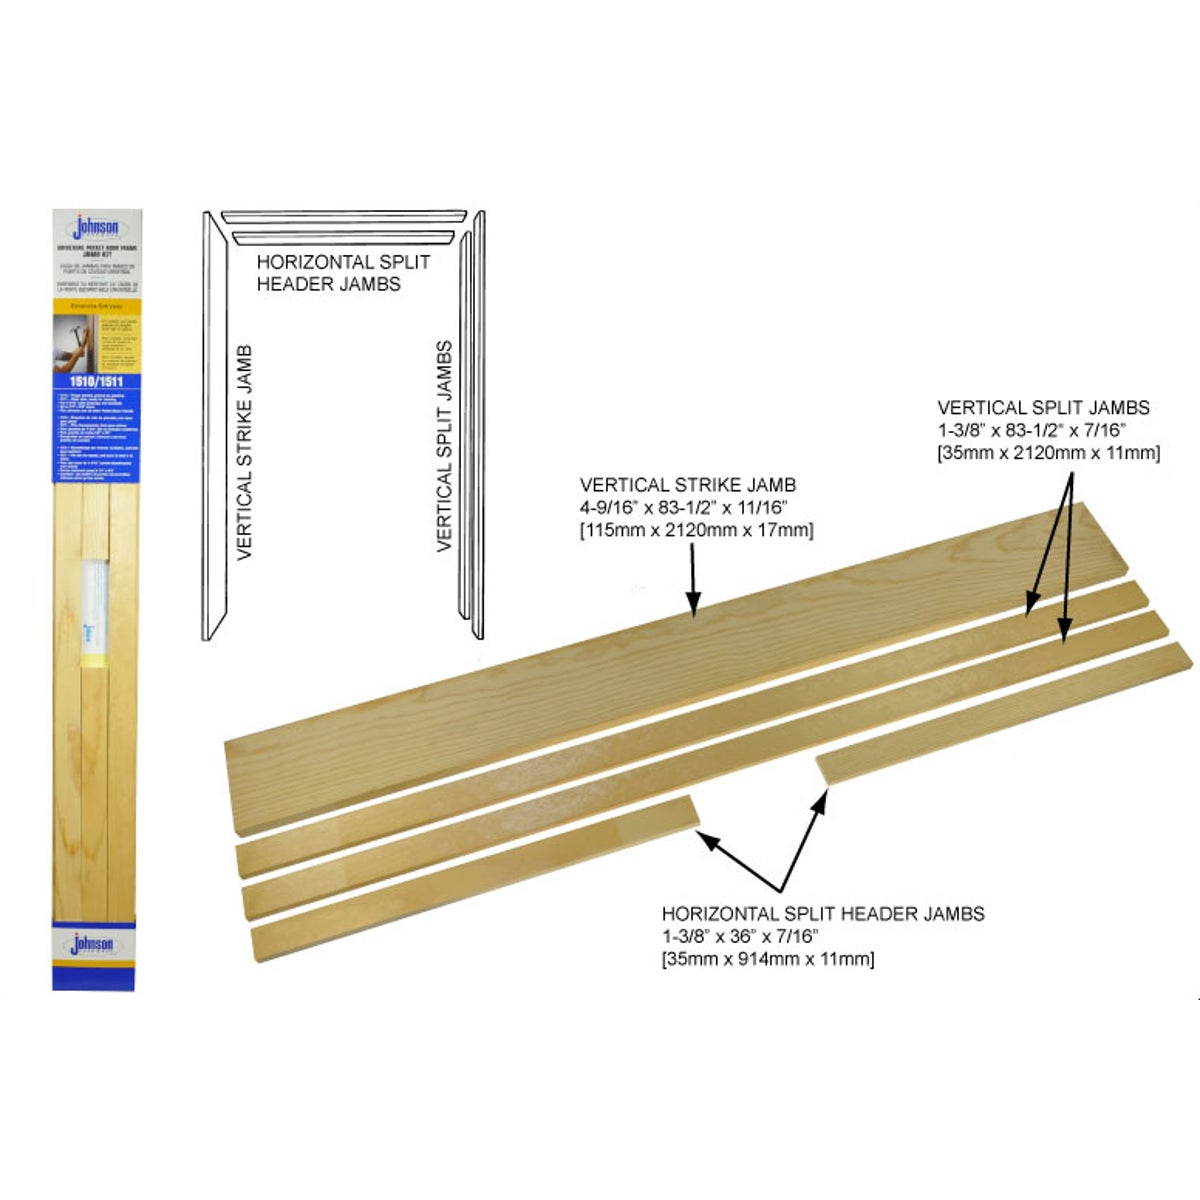 DOOR FRAME JAMB KIT - 15113068 by Johnson Products